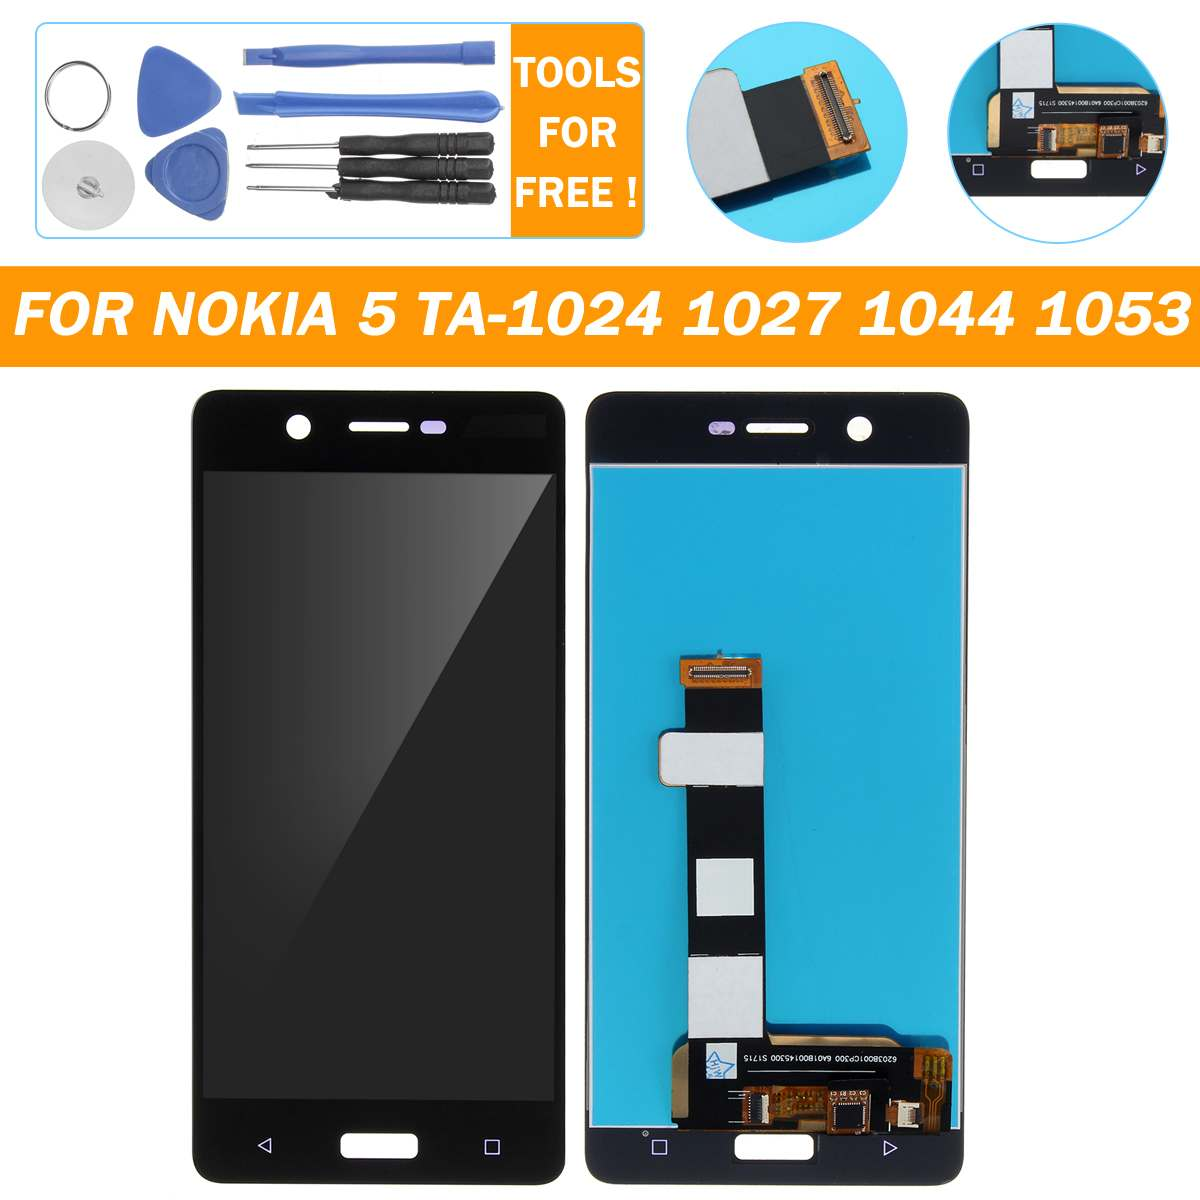 LEORY LCD Display+Touch Screen Digitizer Assembly Screen Replacement For <font><b>Nokia</b></font> <font><b>5</b></font> TA-1024 1027 1044 <font><b>1053</b></font> Mobile Phone Fix Tools image